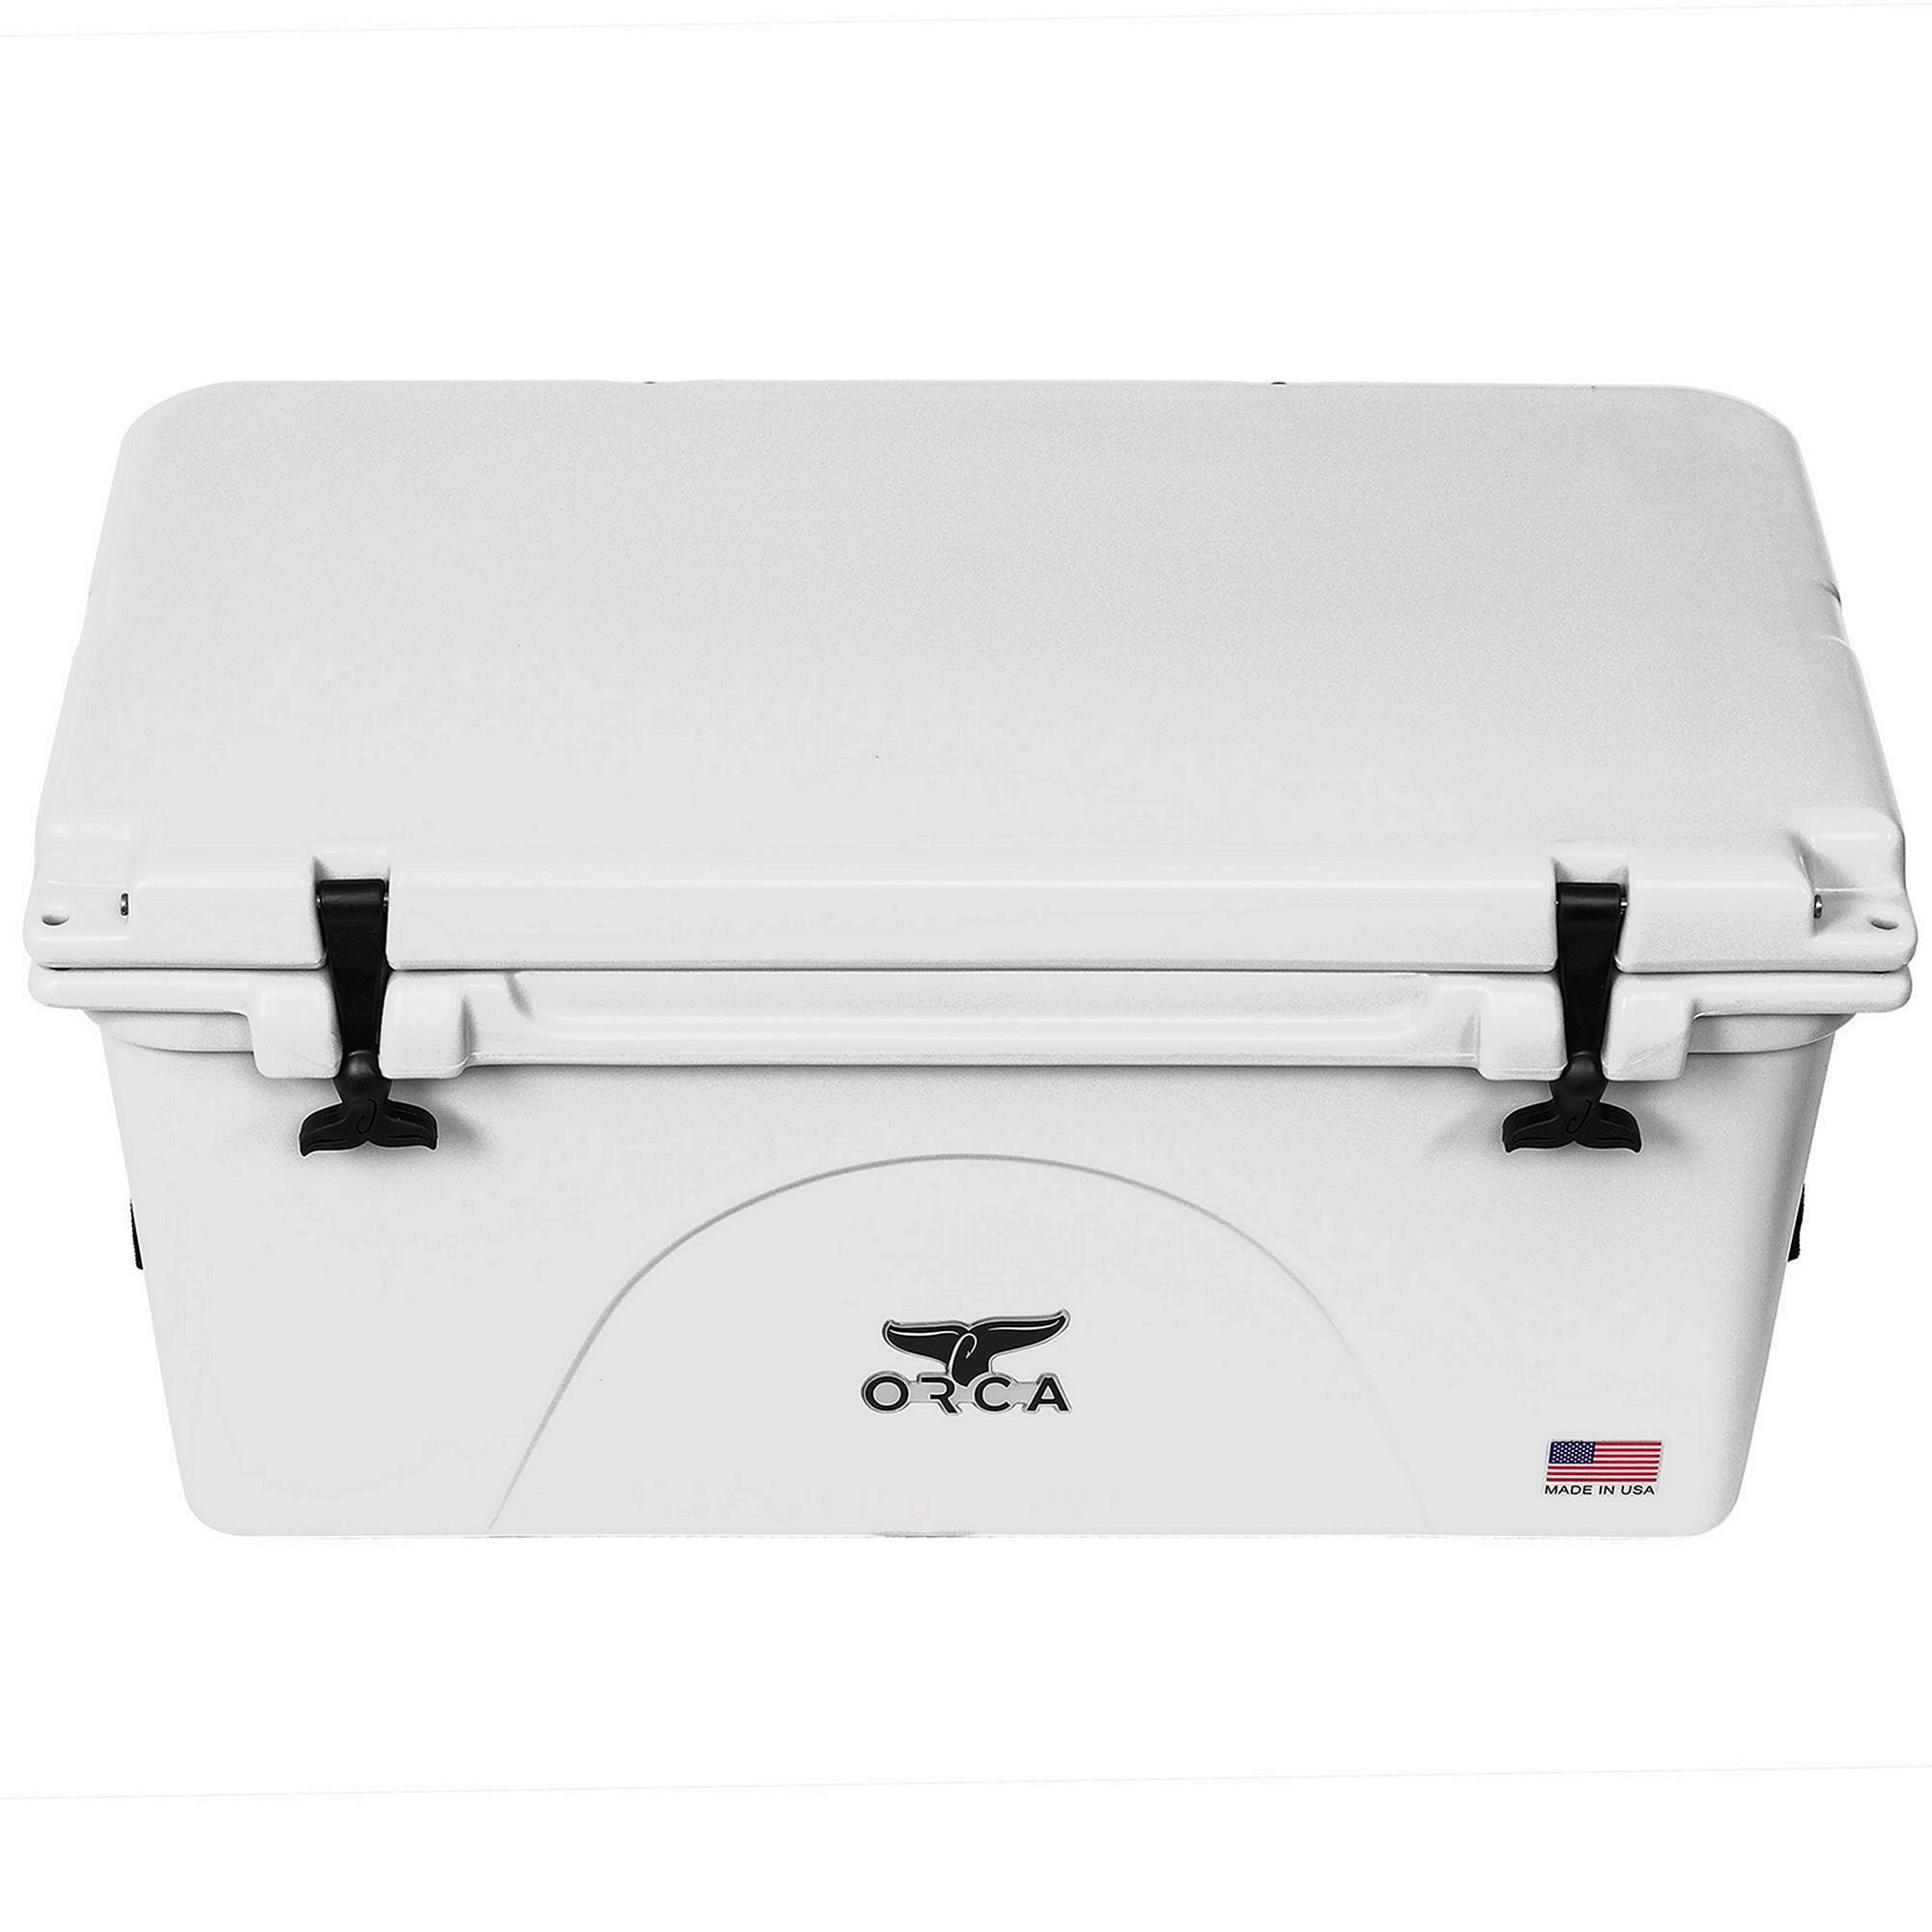 ORCA 75 quart Cooler, white